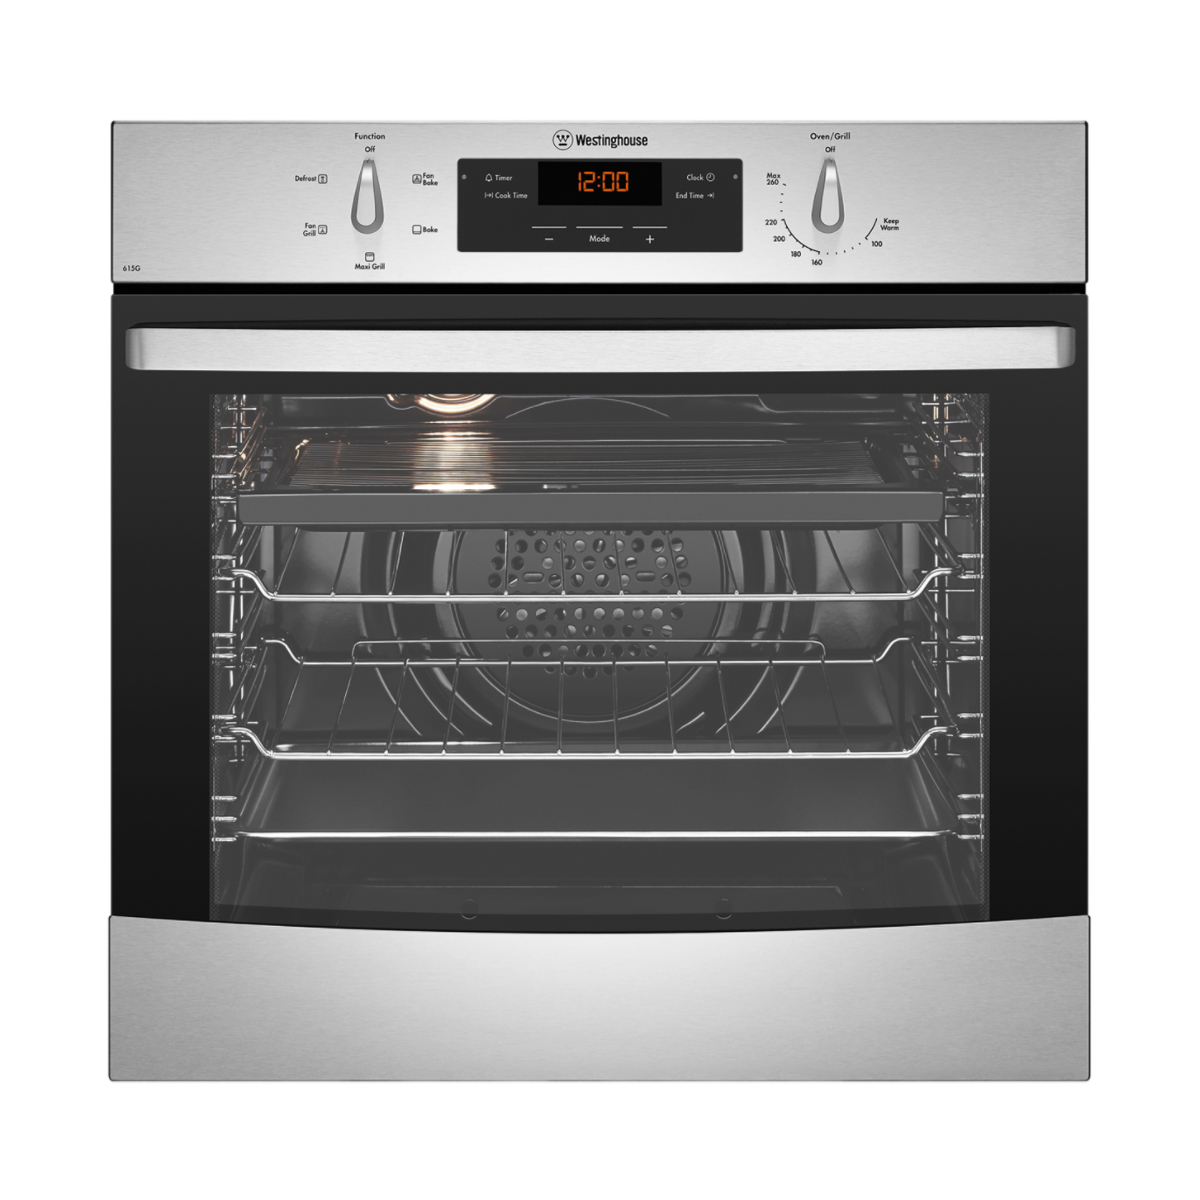 Westinghouse WVG615SLPG 60cm LPG Gas Built-In Oven | Home ...